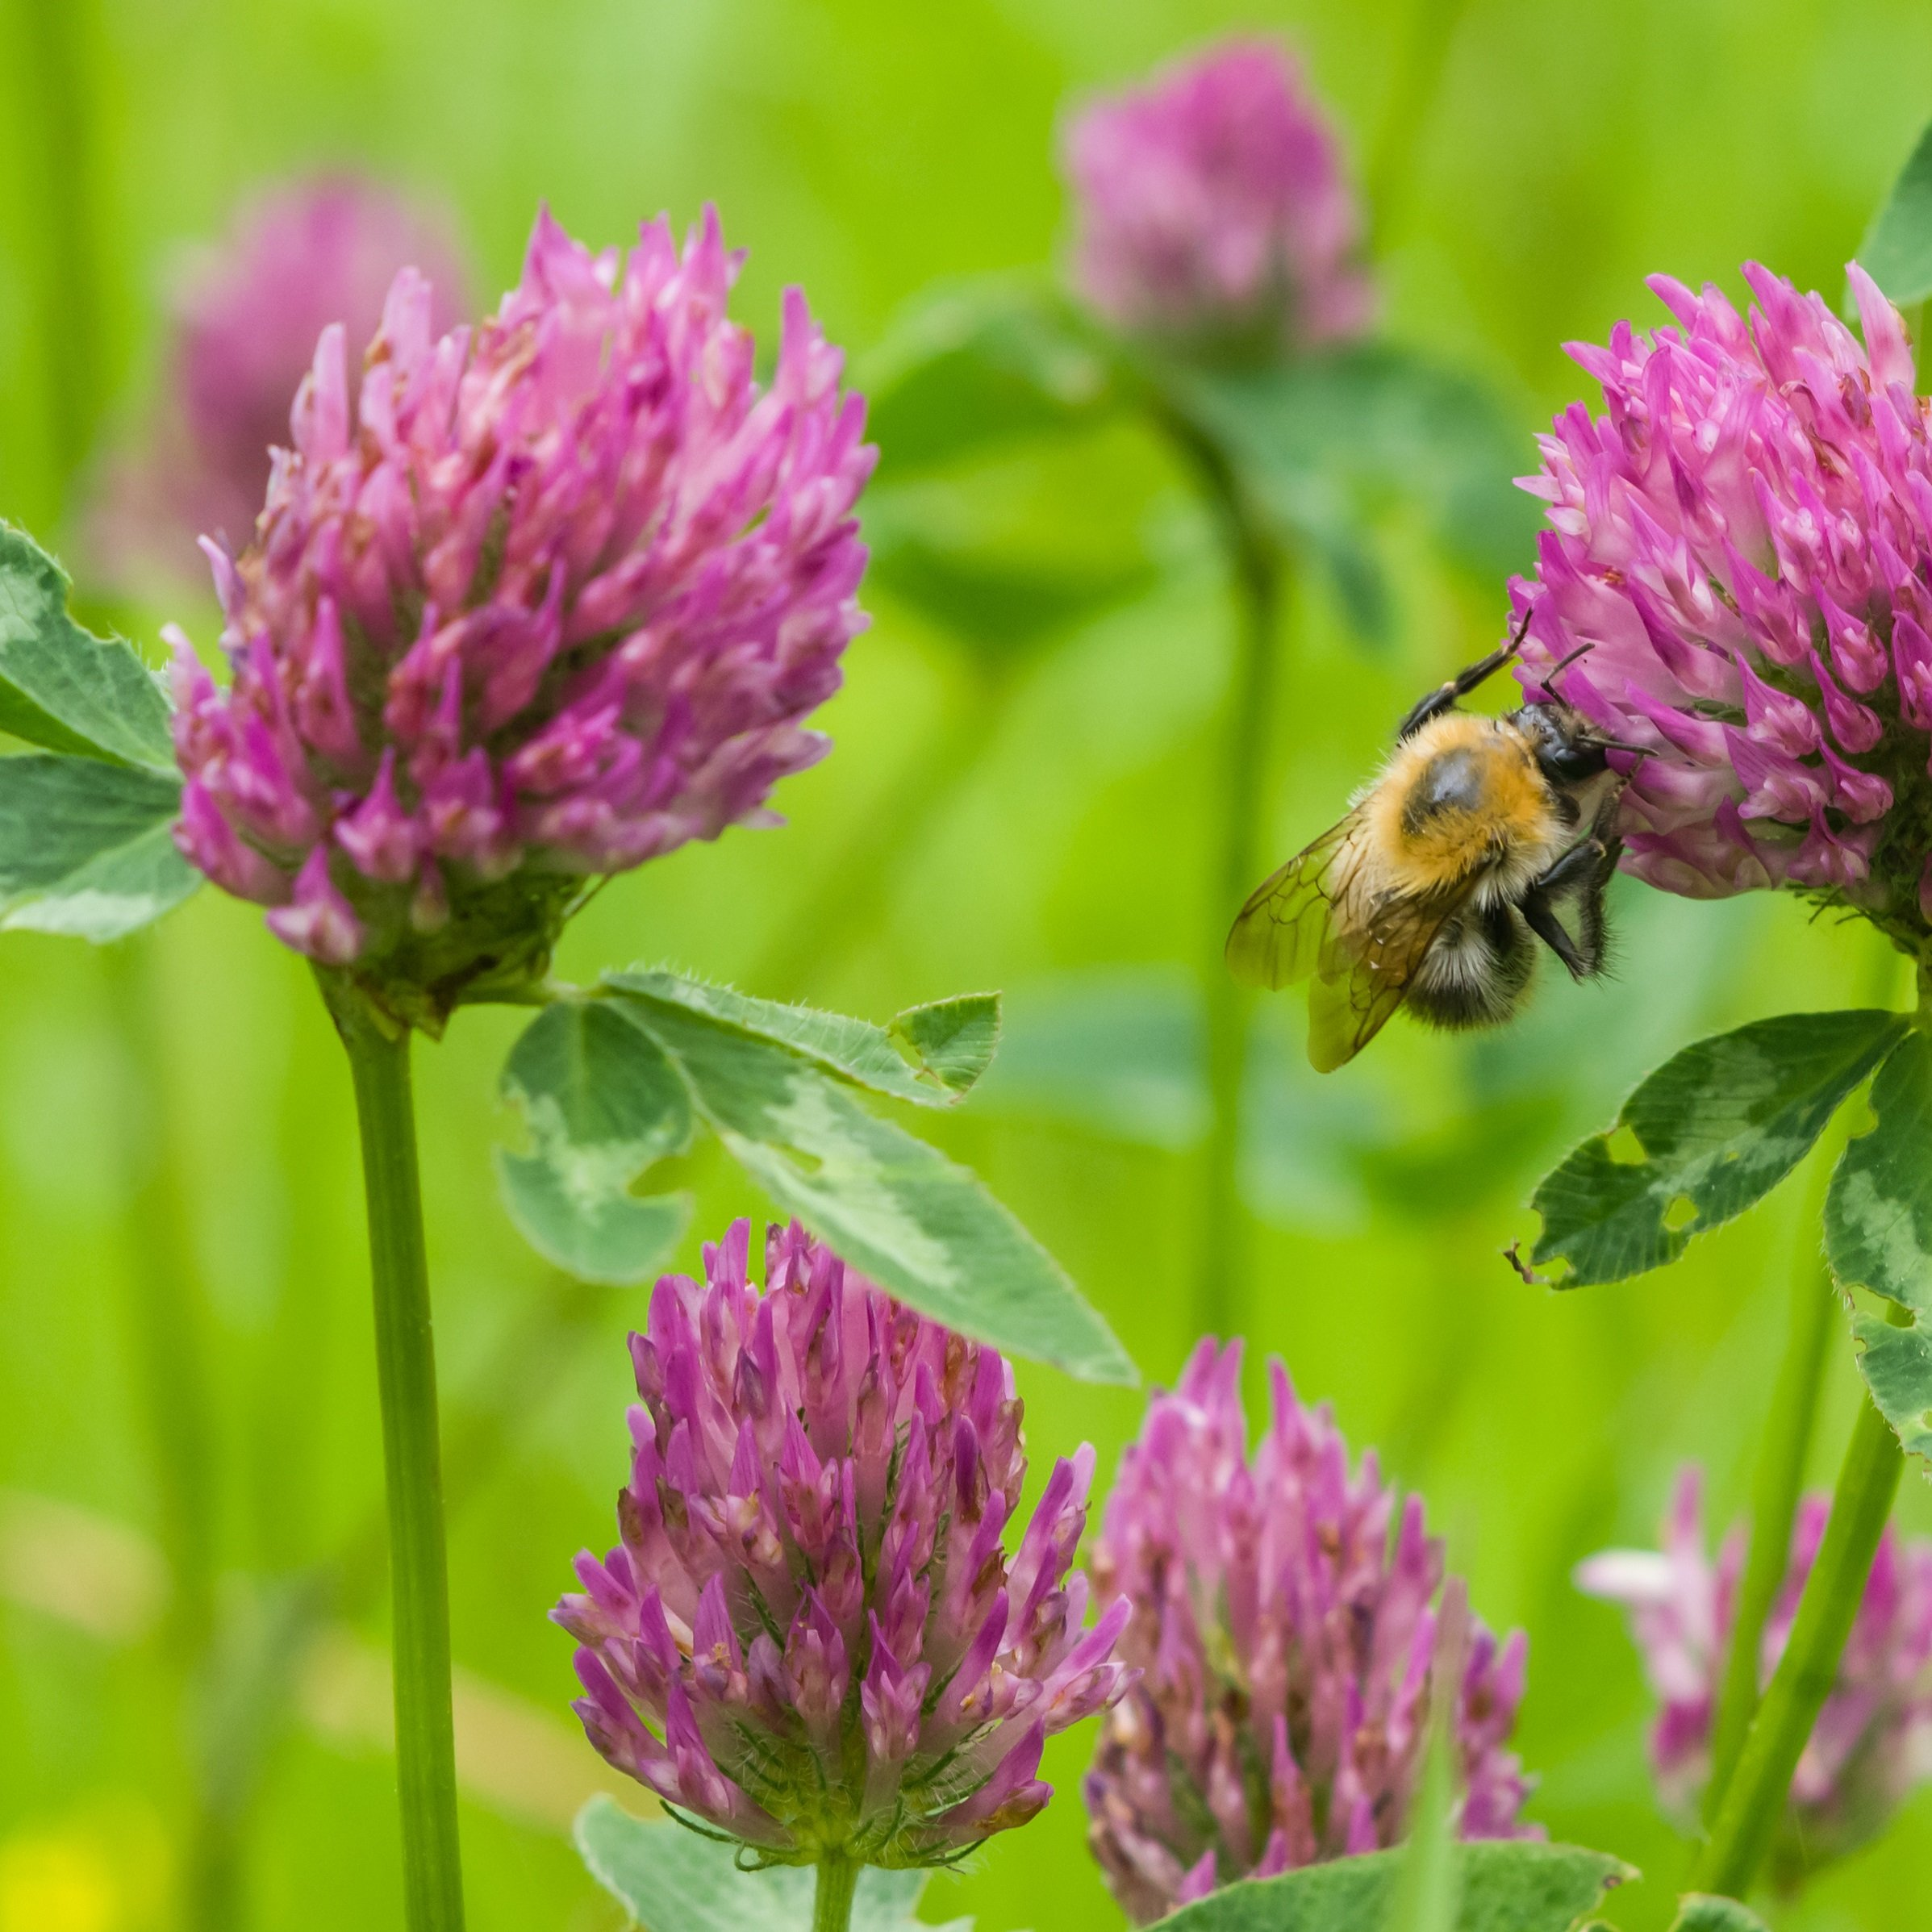 Outsidepride Red Clover Seed: Nitro-Coated, Inoculated - 5 LBS by Outsidepride (Image #2)